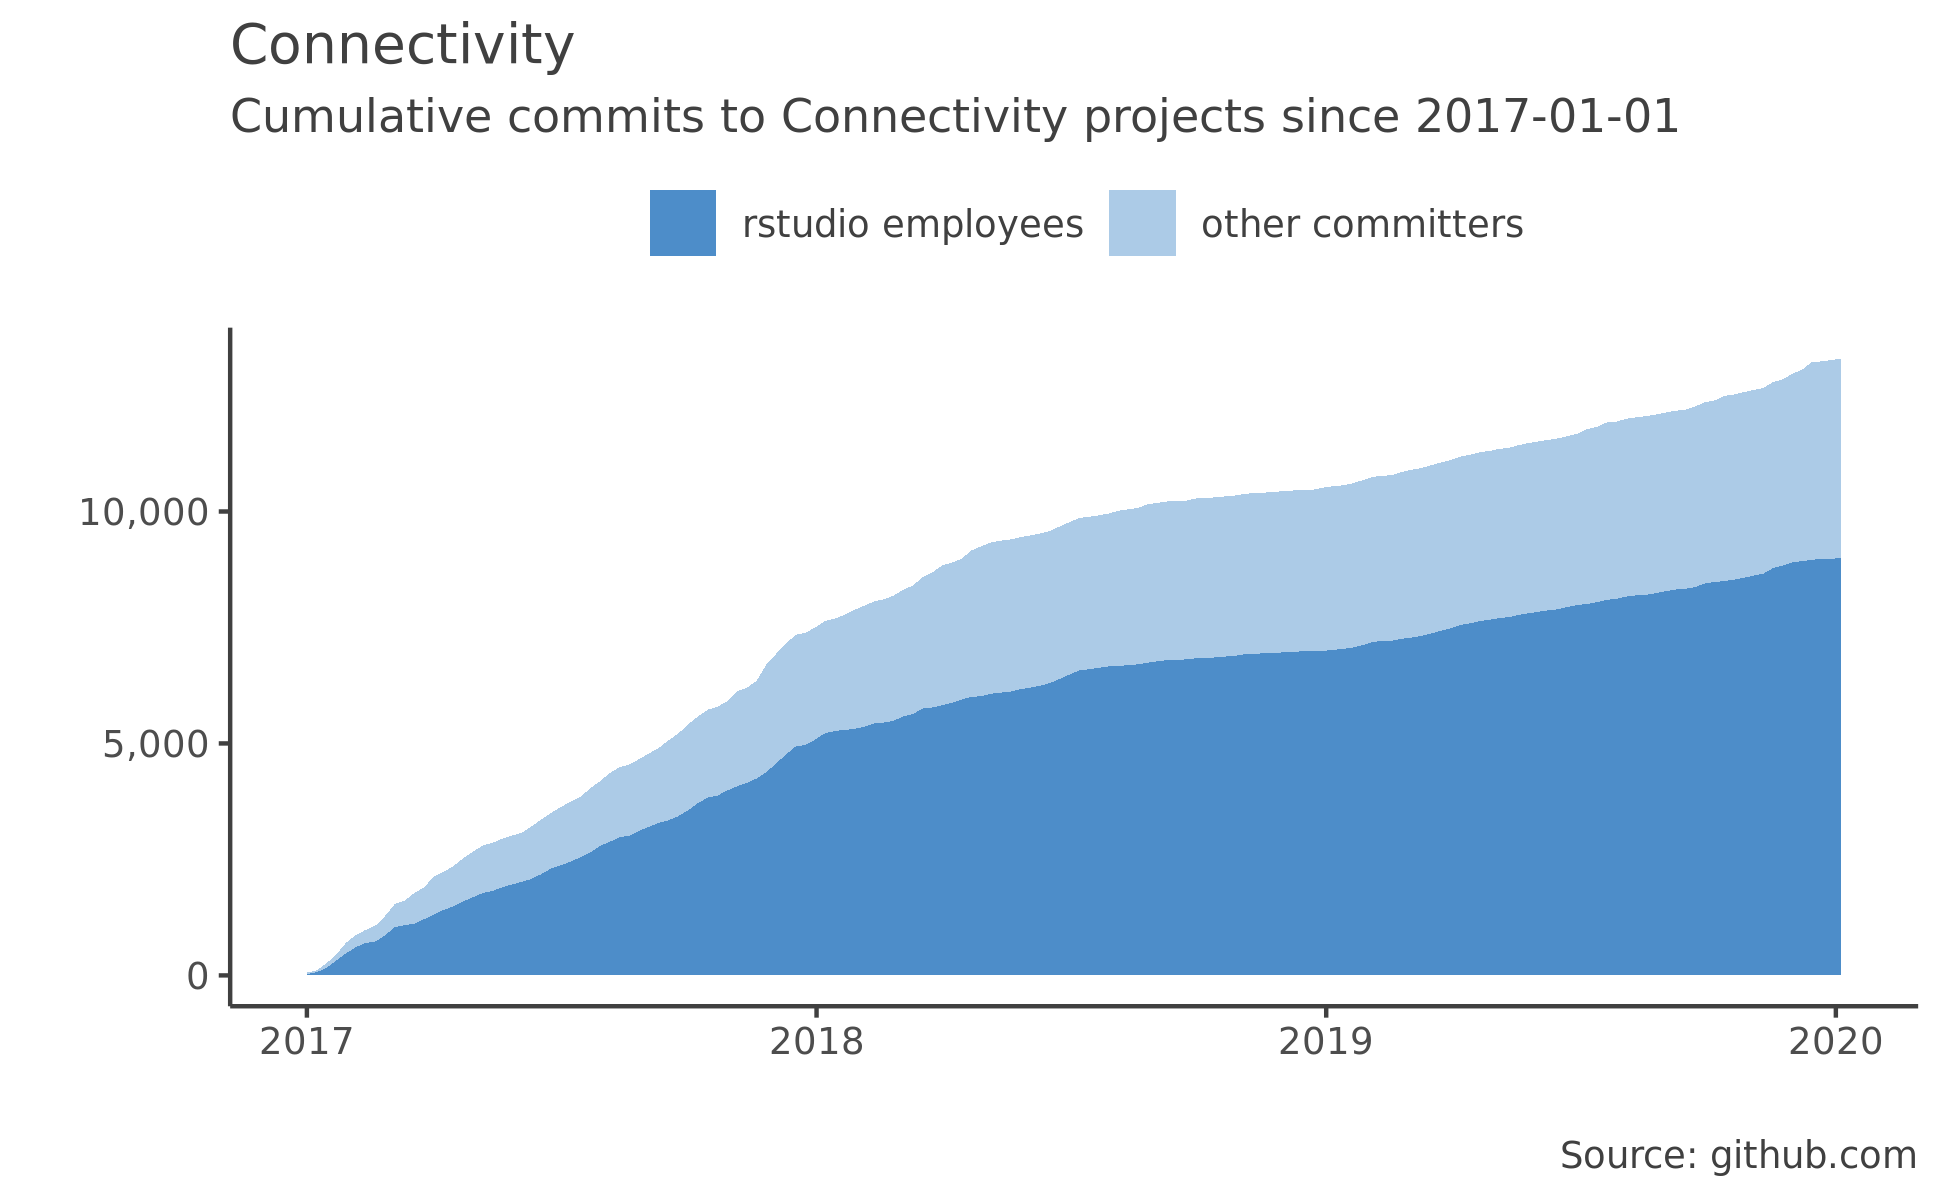 Connectivity Packages